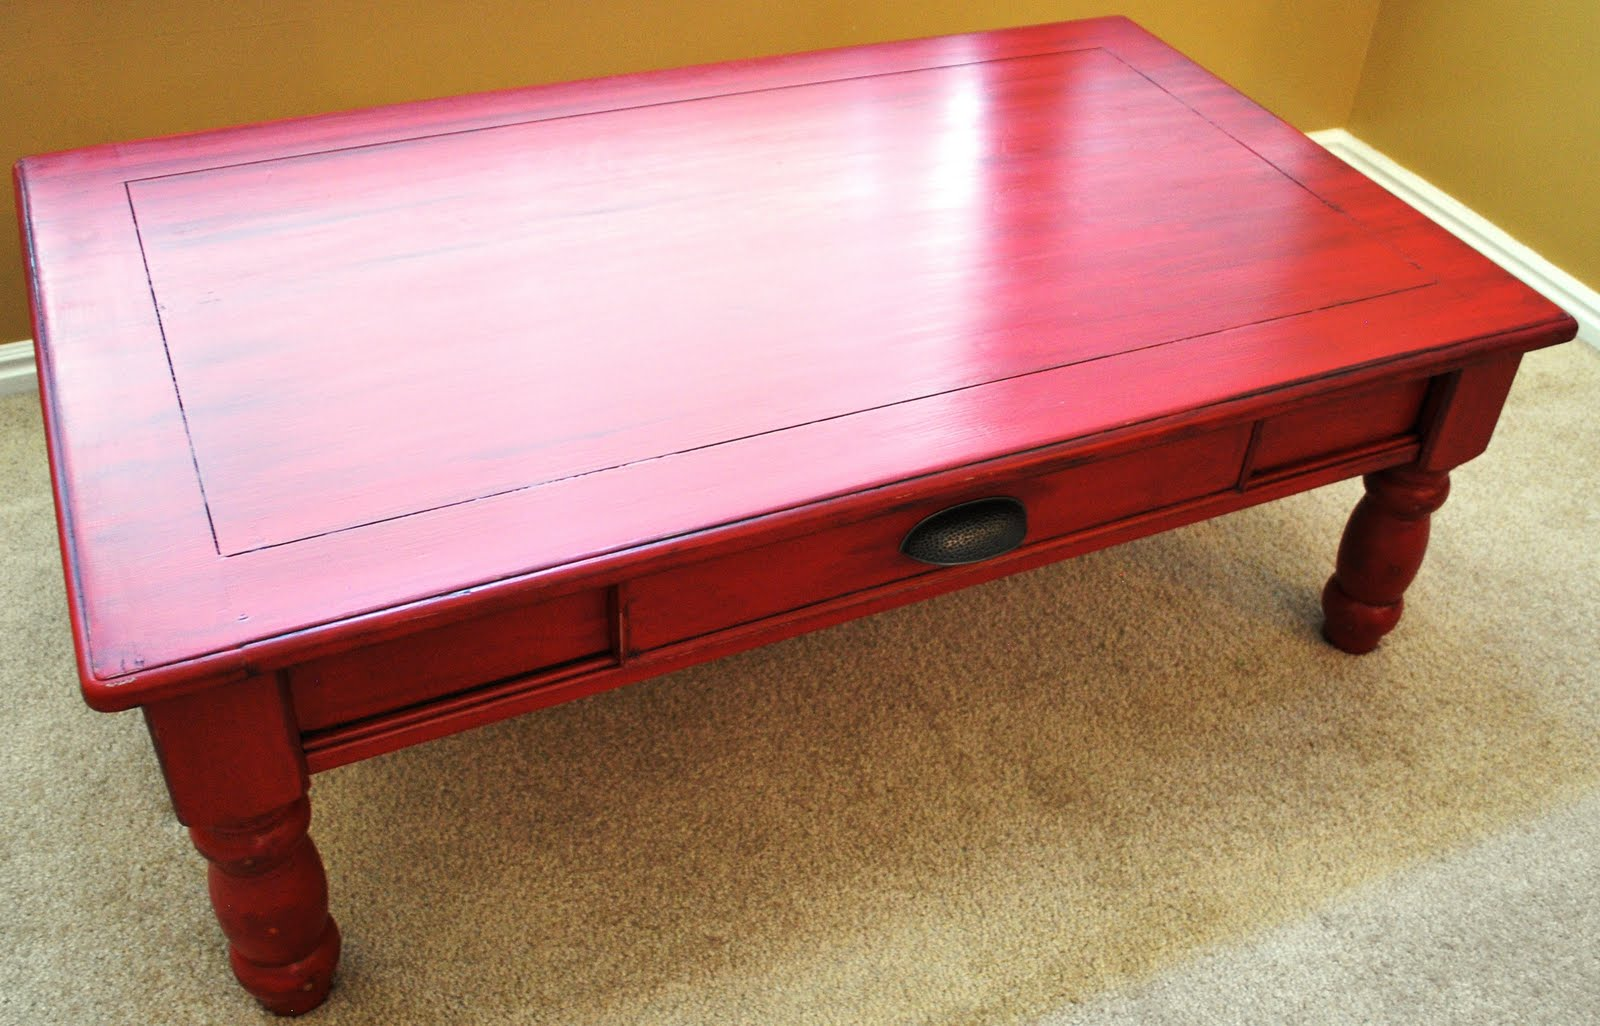 Wonderful Red Coffee Table U2013 Privately Sold